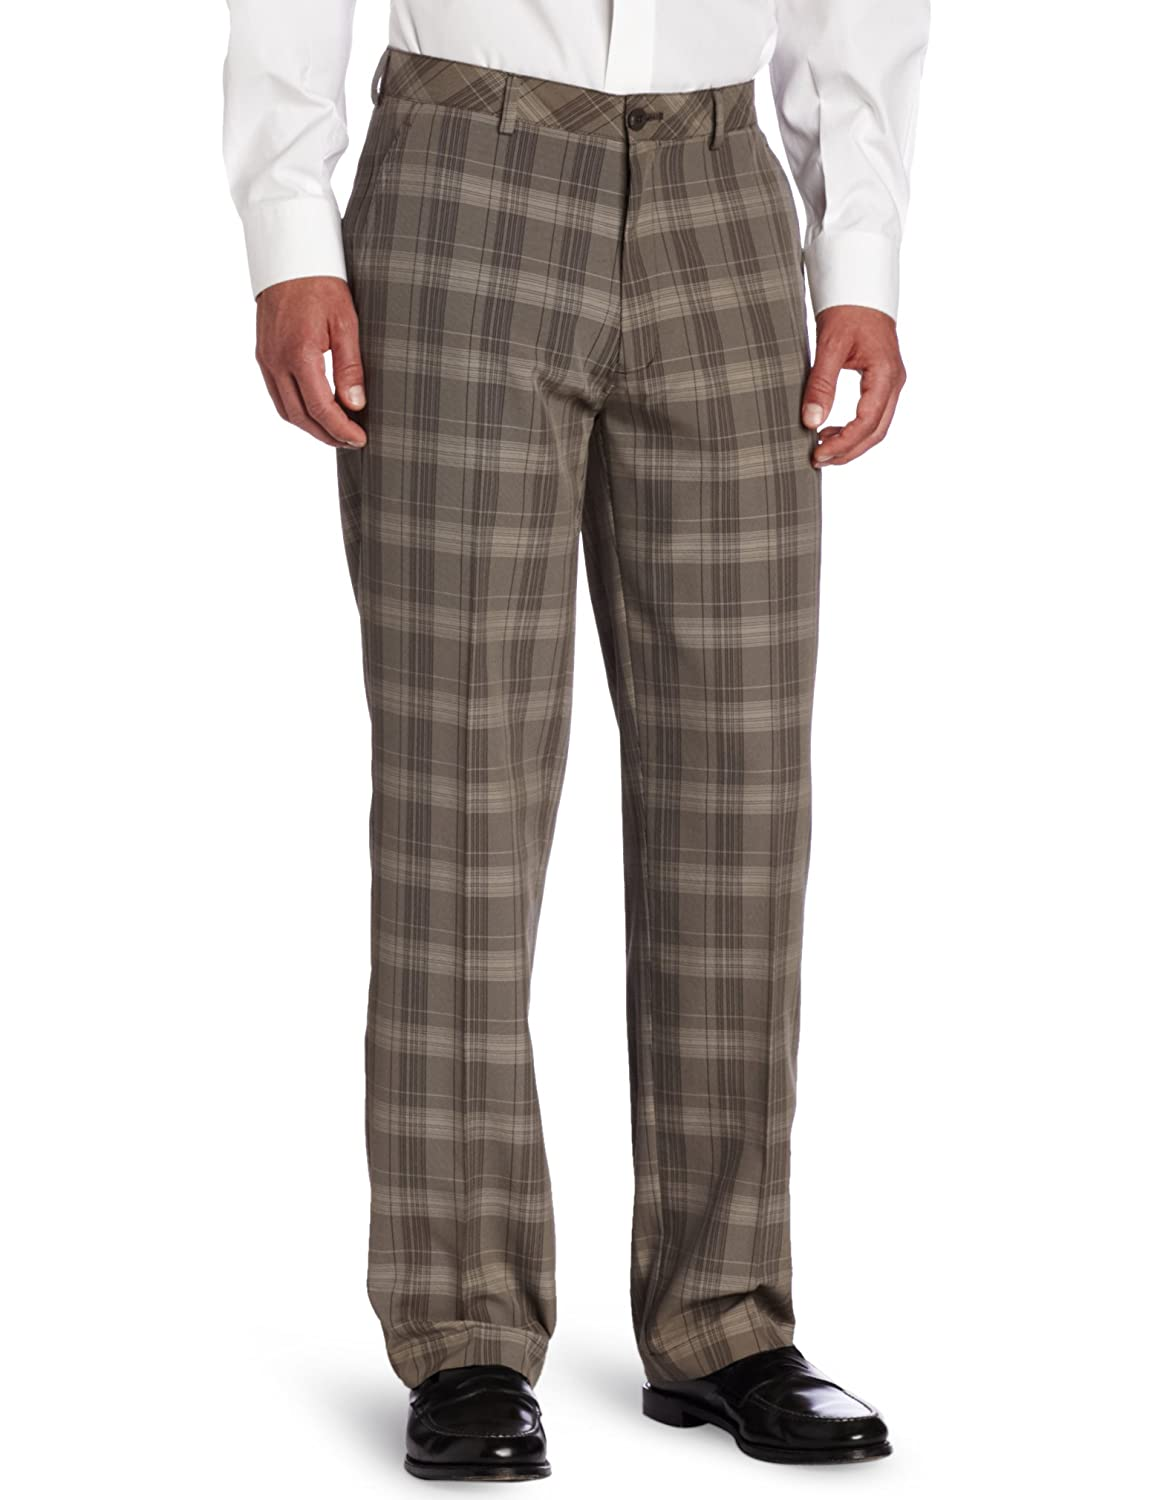 DressinGreatGatsbyClothesforMen Glen Plaid Straight Fit Flat Front Pant  AT vintagedancer.com